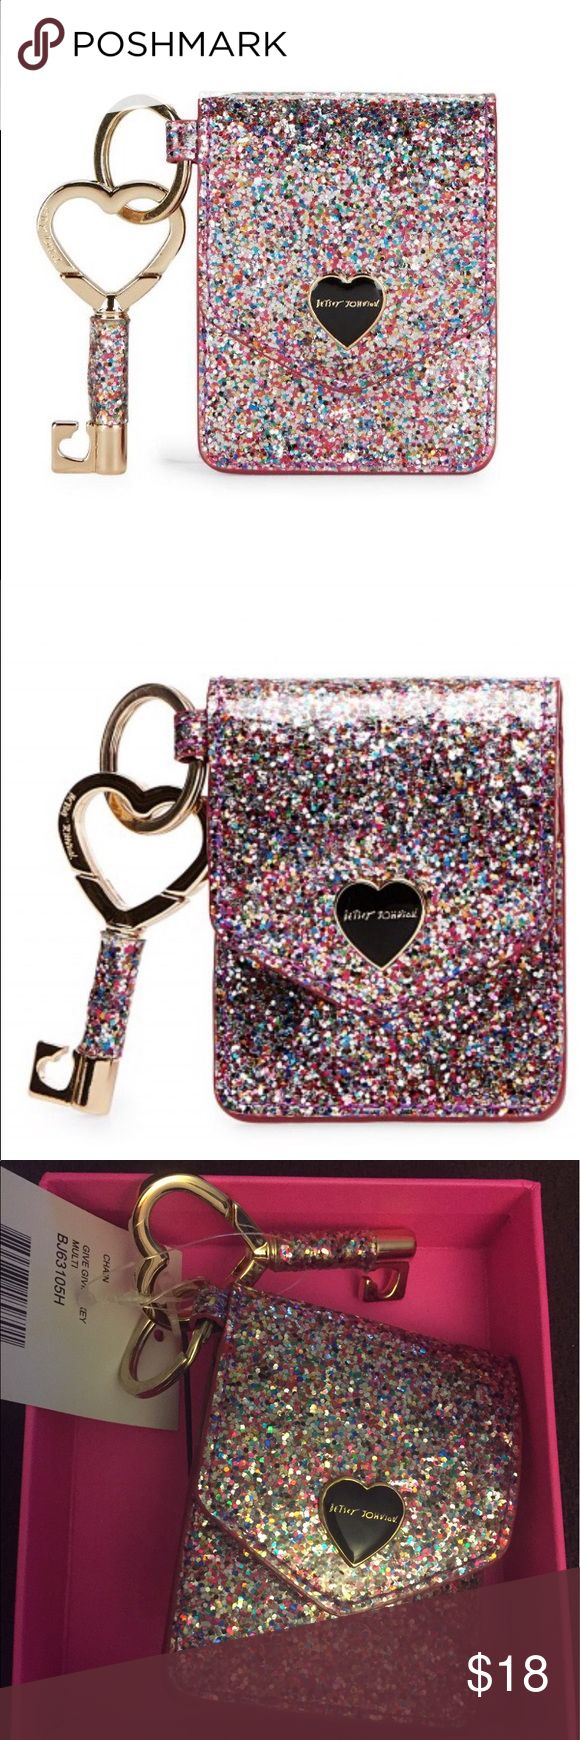 Betsey Johnson glitter key holder fob!!! Betsey Johnson swivel key chain/ holder/ Fob in multicolored glitter. Gold interior with 3 slots for cards & license & hook to attach to handbag. Betsey Johnson Accessories Key & Card Holders